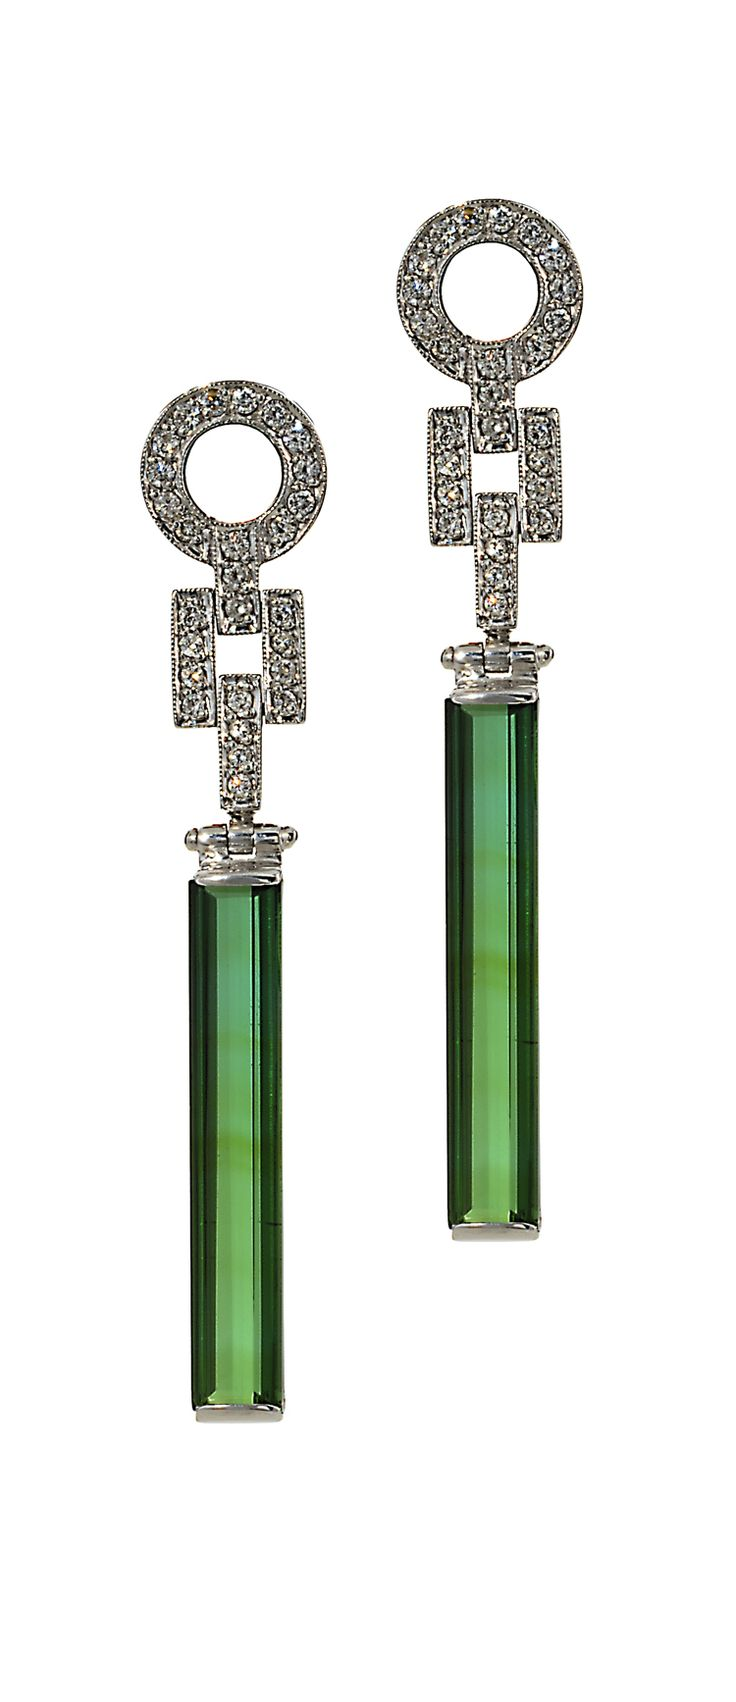 "Green is such a hot color right now and these tourmaline earrings by Graziela are the perfect accessory to spice up an evening ensemble. Set in 14K White Gold with .54cts of White Diamonds, these ""Forever Tourmaline"" earrings are sexy yet sophisticated!"